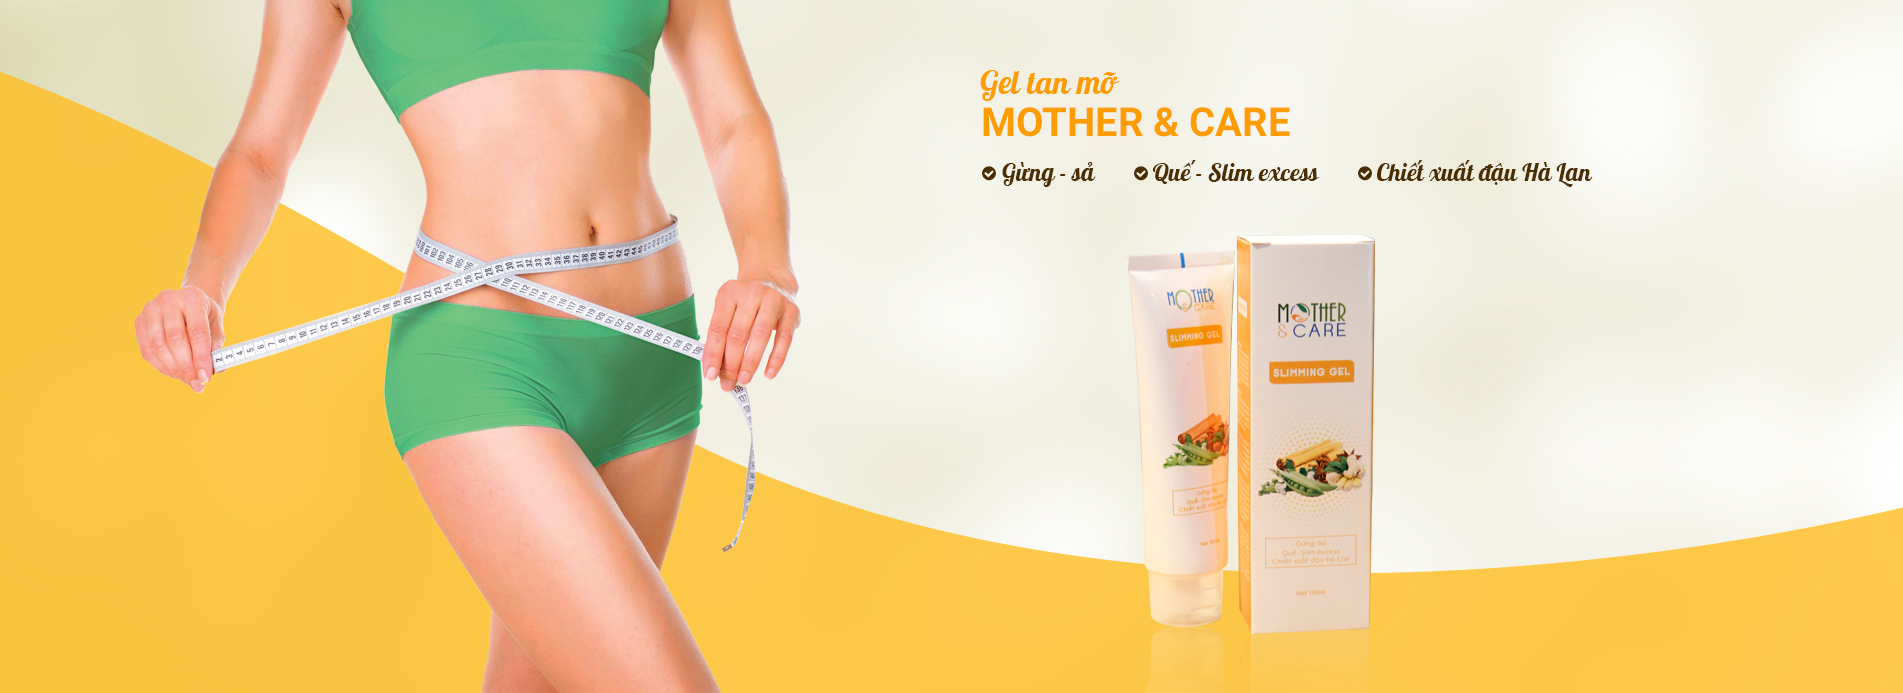 Gel tan mỡ Mother & Care